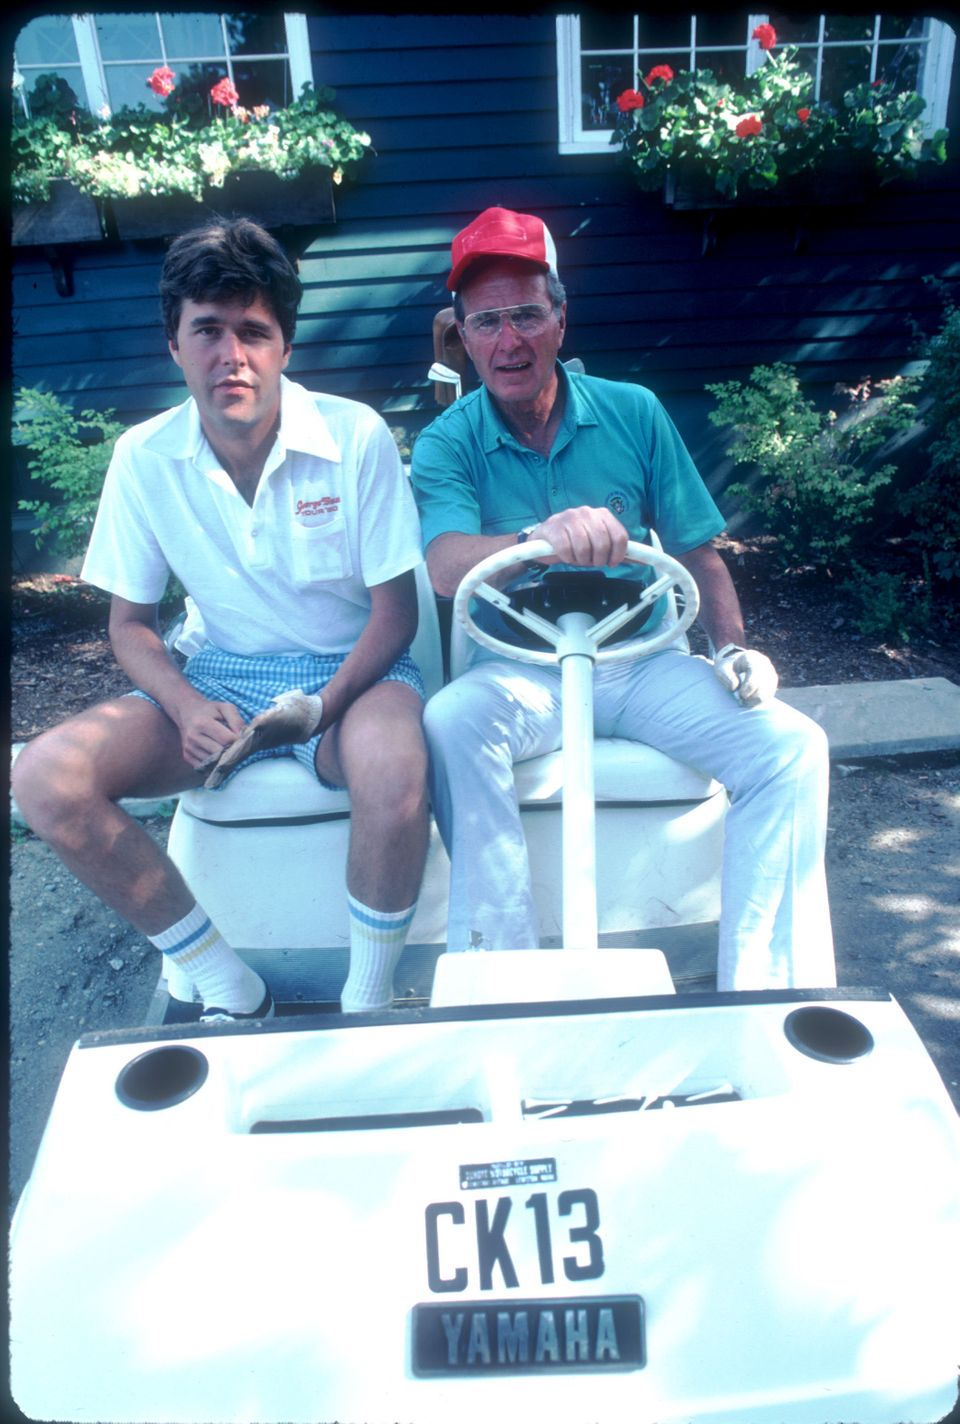 Ok so he was Vice President at the time, but the '80s really weren't kind to anyone, including Bush and his son, Jeb (seen he